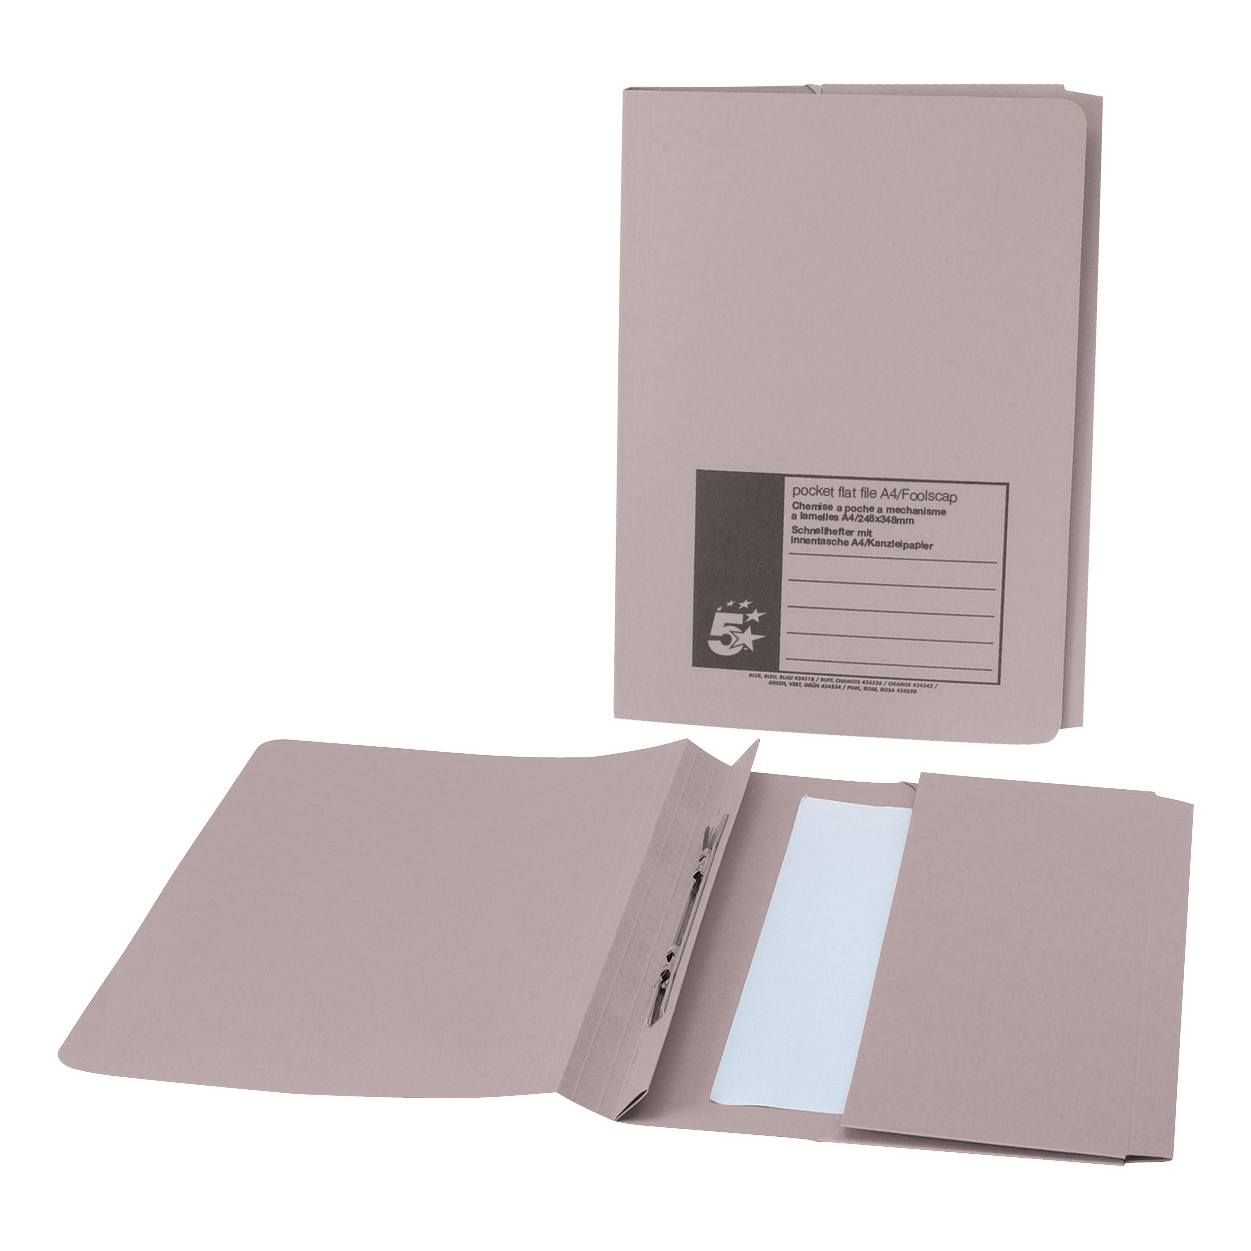 Clip Files 5 Star Office Flat Bar Pocket File Recycled Manilla 285gsm Capacity 200 Sheets Foolscap Buff Pack 25